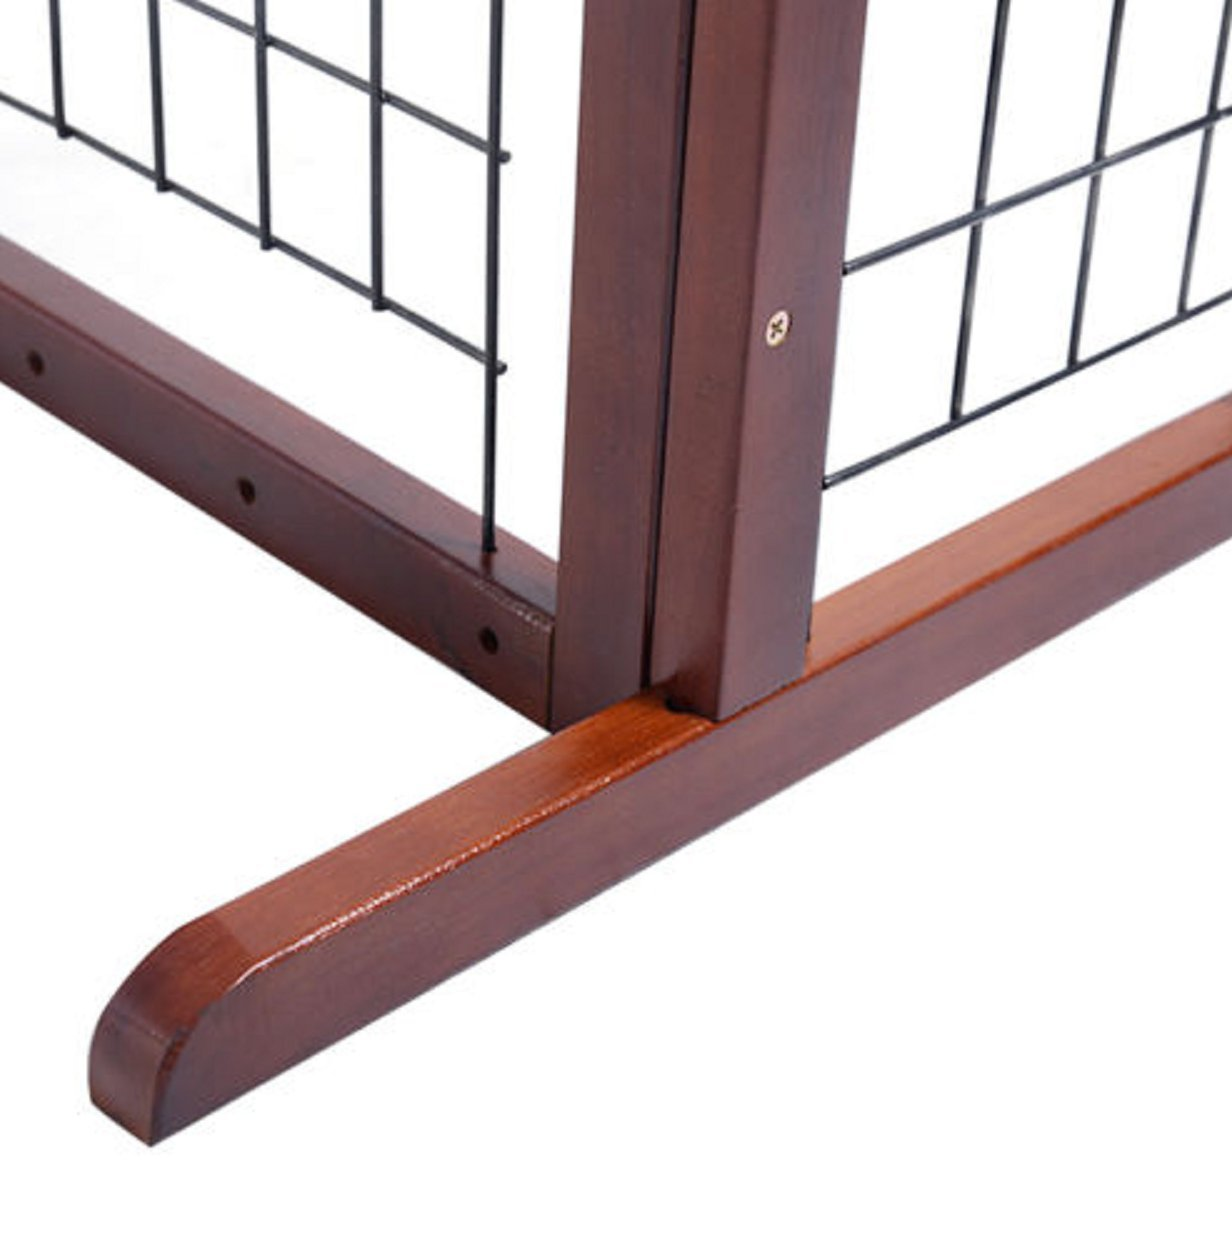 Gate Dog Wood Door Paw Wide Tall Adjustable Indoor Solid Construction Pet by SisterYou (Image #6)